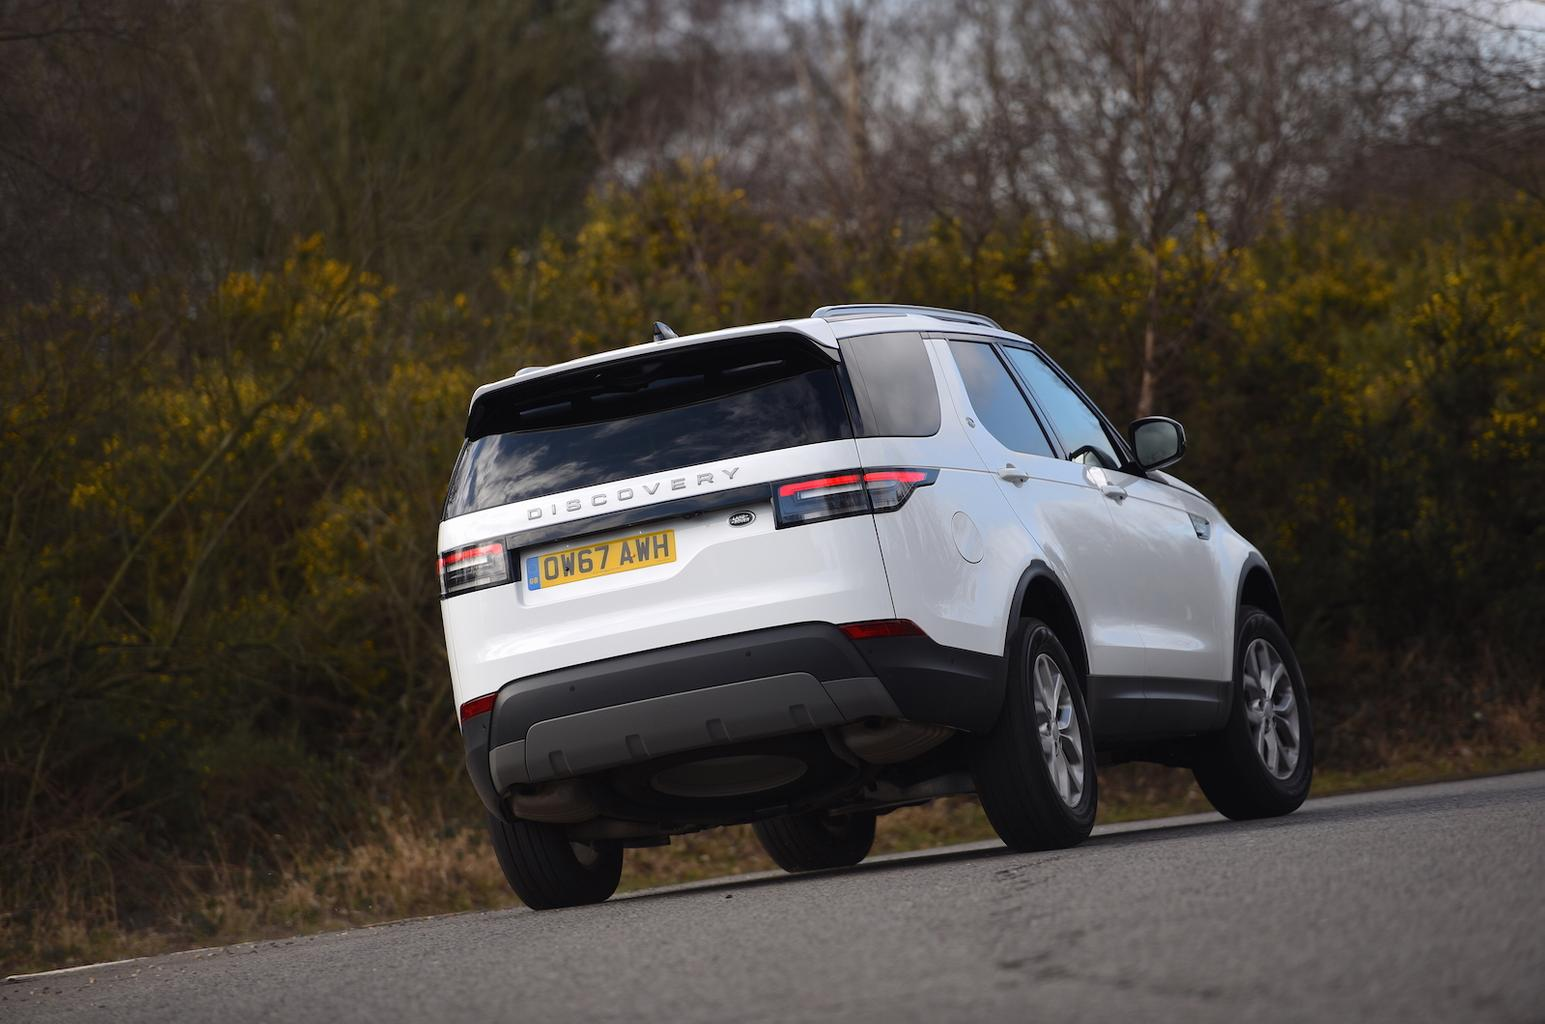 2018 Land Rover Discovery Si4 review – price, specs and release date